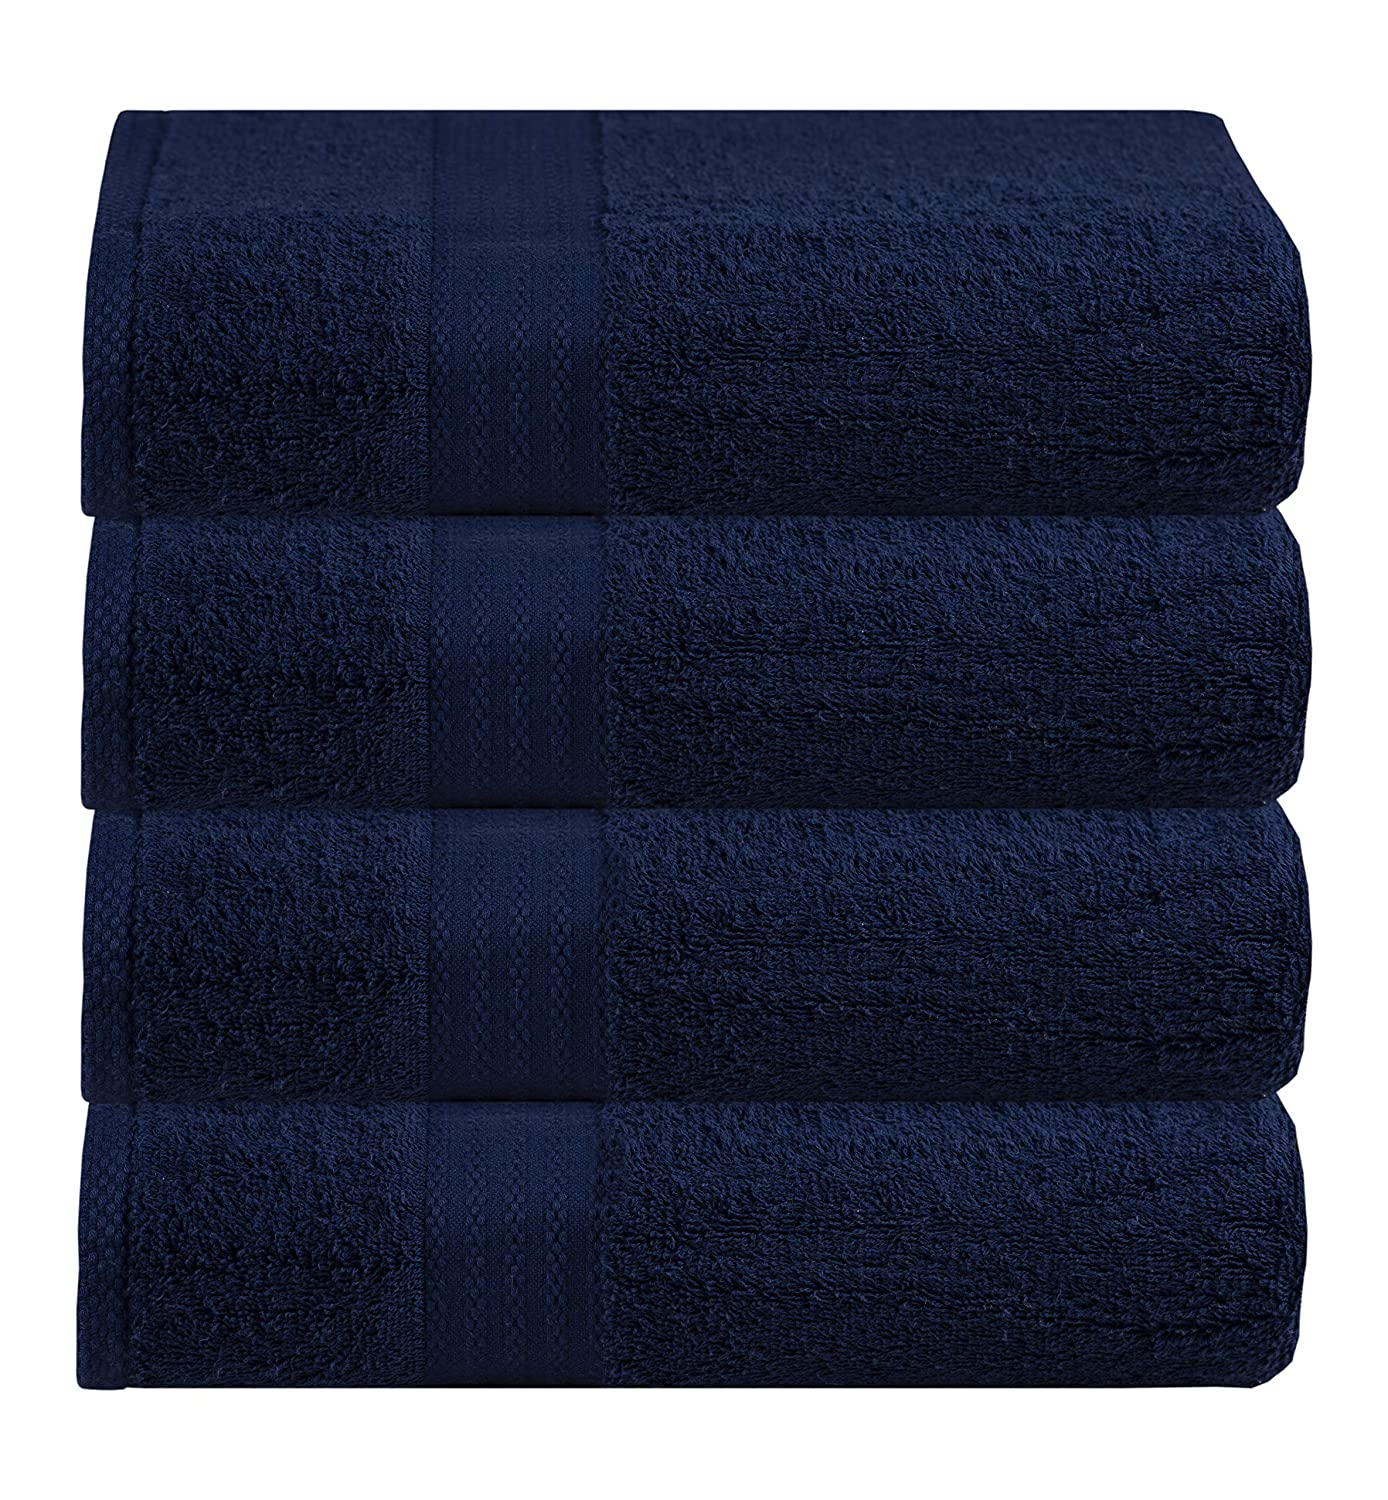 Sky Blue MahiritzHomeFashion Quick Drying Ideal for Everyday use Glamburg Ultra Soft 4 Piece Bath Towel Set Hotel /& Spa Highly Absorbent Multipurpose 100/% Pure Ringspun Cotton Contains 4 Bath Towels 27x54